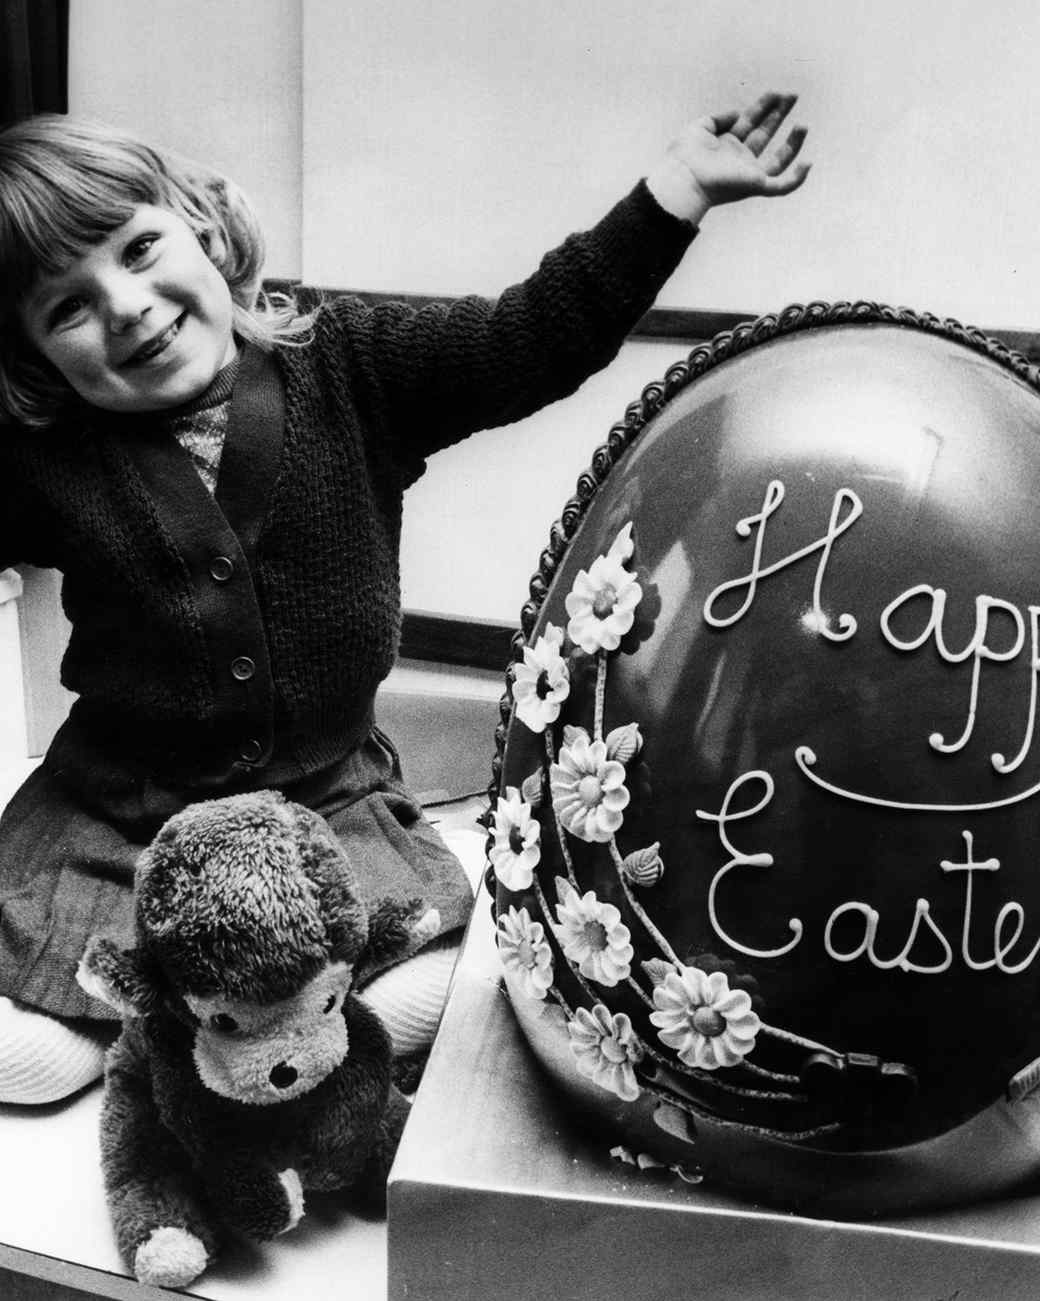 Janette and a giant easter egg